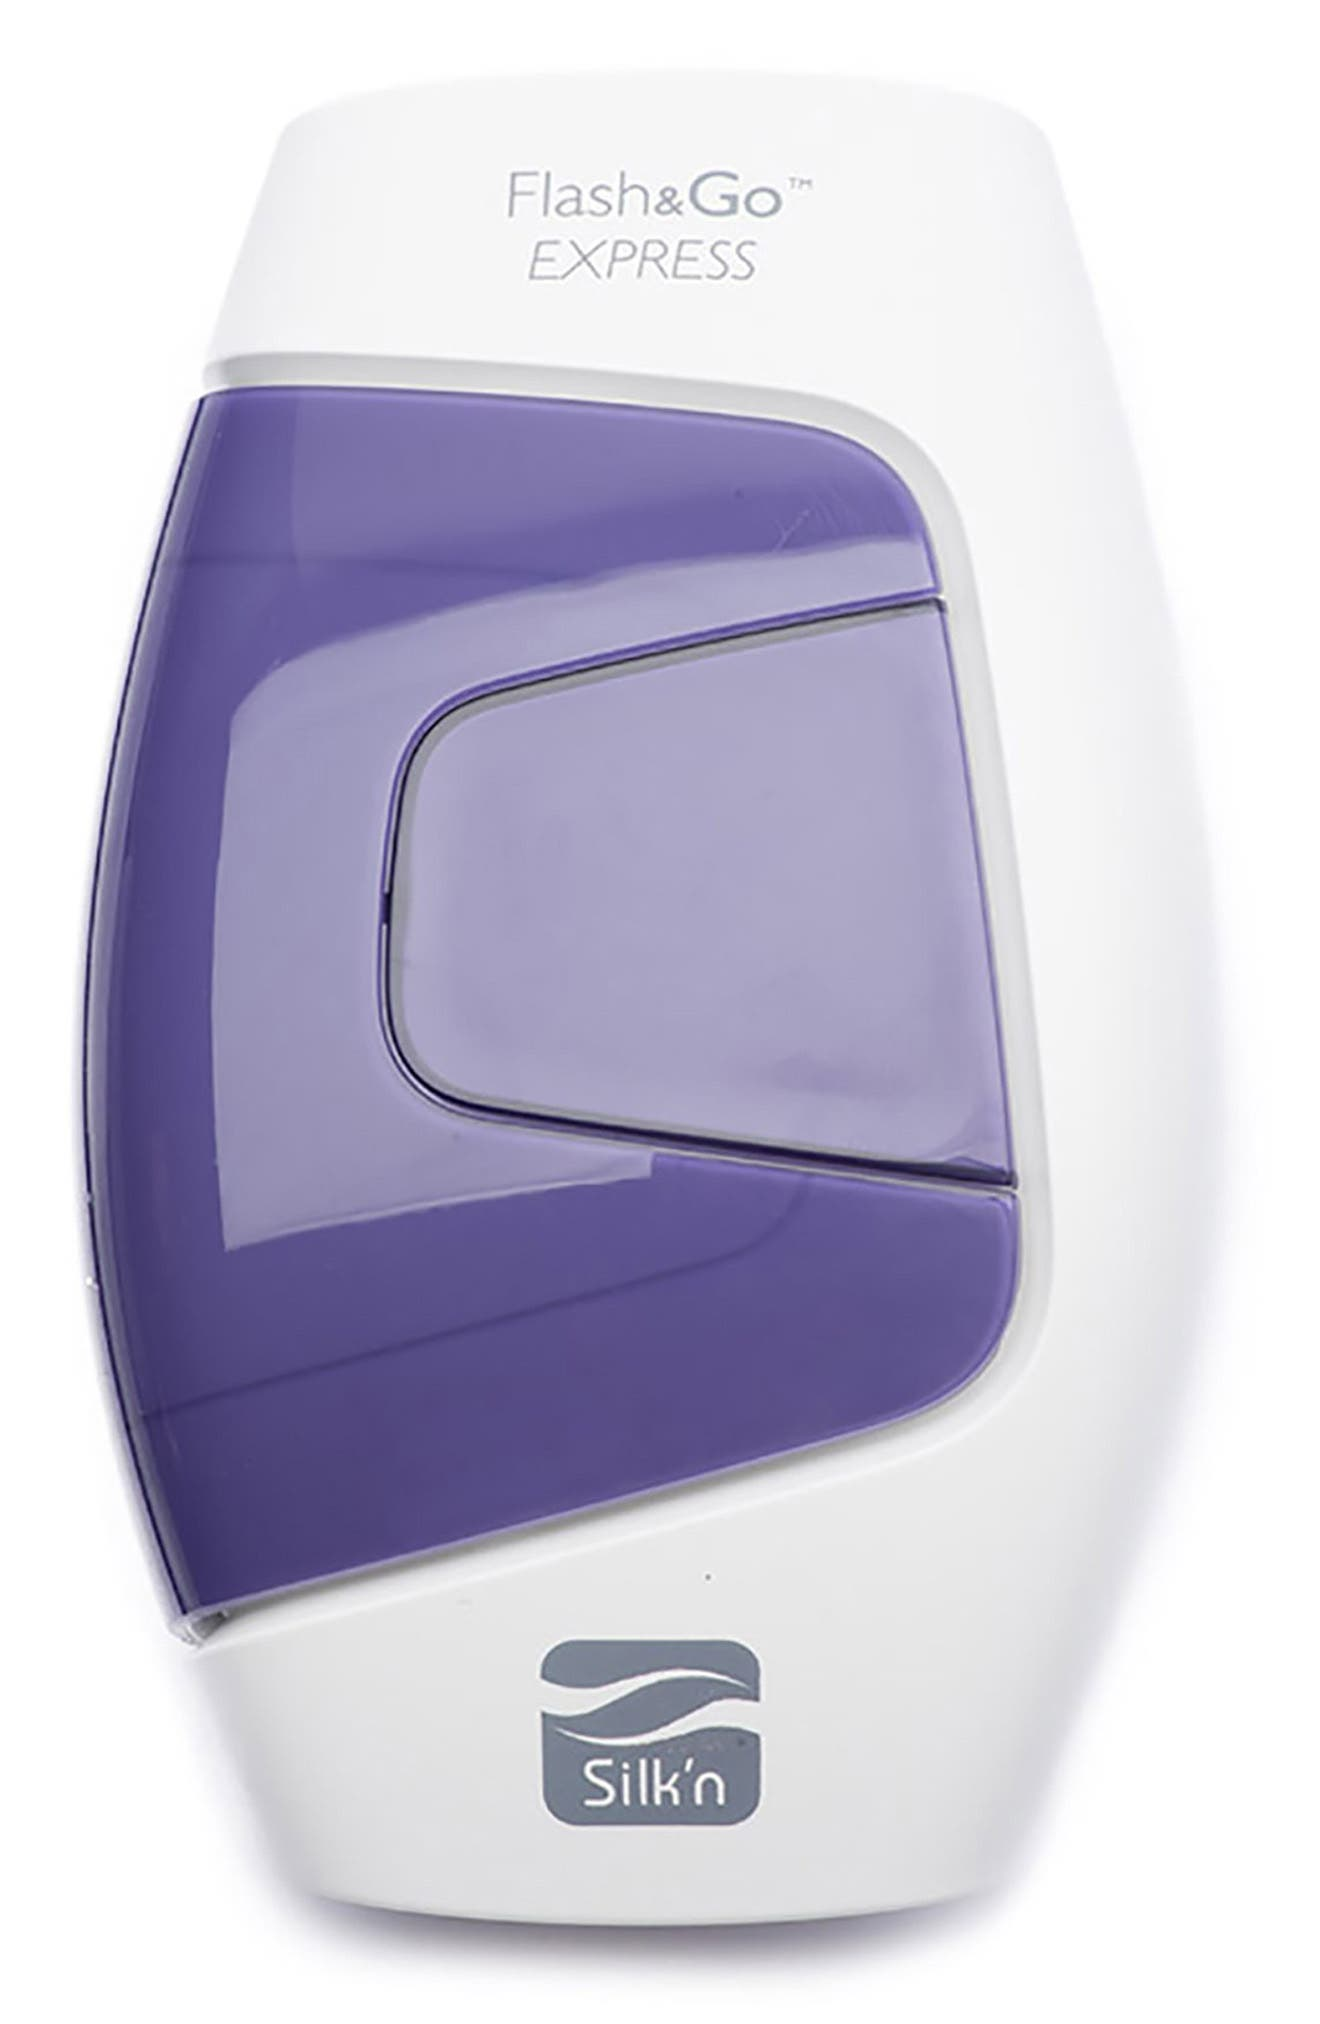 Silk'N Flash & Go Express Hair Removal Device, Size One Size - No Color -  15418867